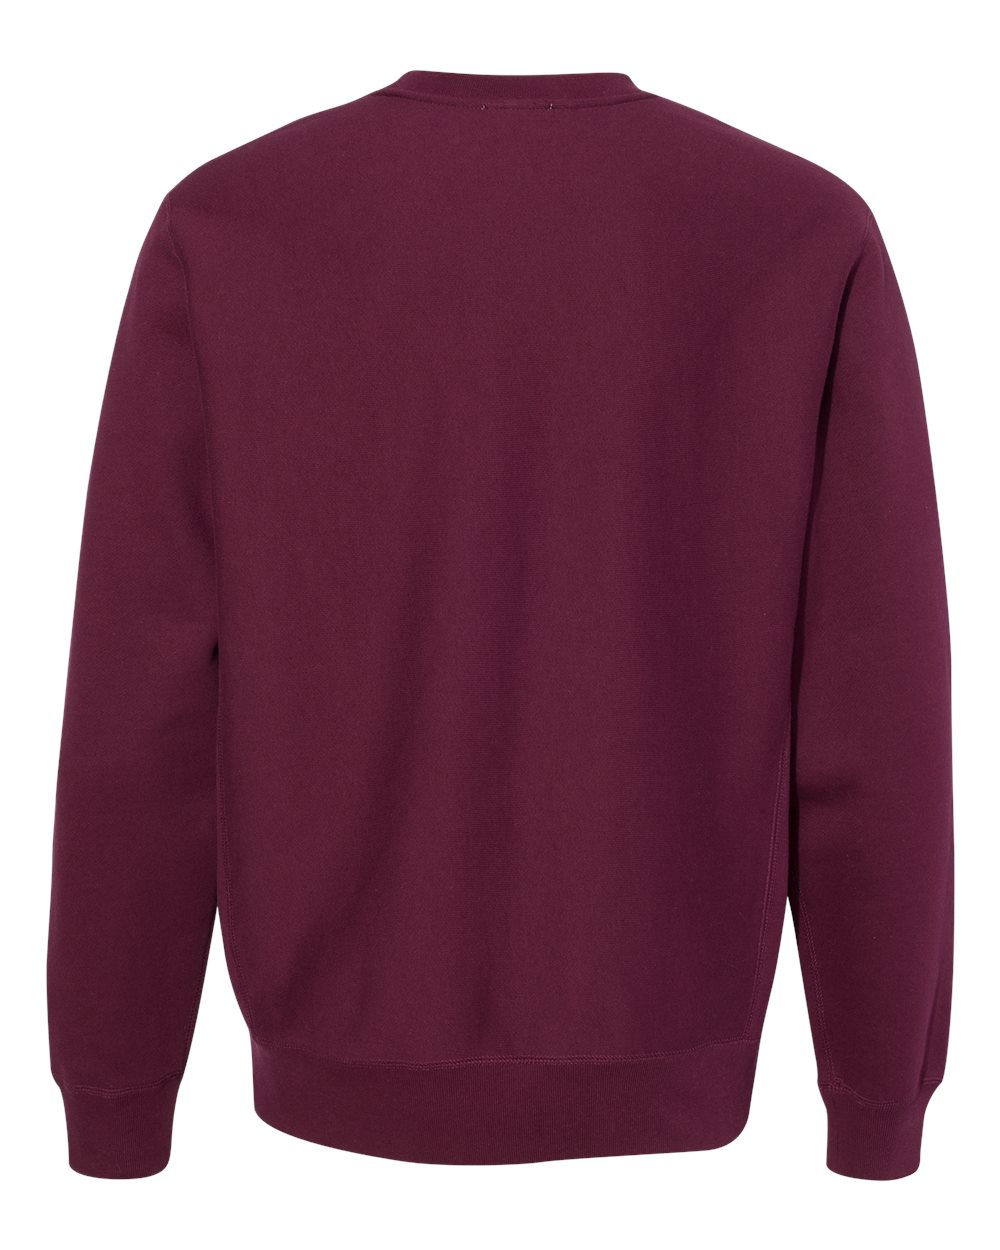 Independent-Trading-Co-Mens-Premium-Heavyweight-Cross-Grain-Sweatshirt-IND5000C thumbnail 25